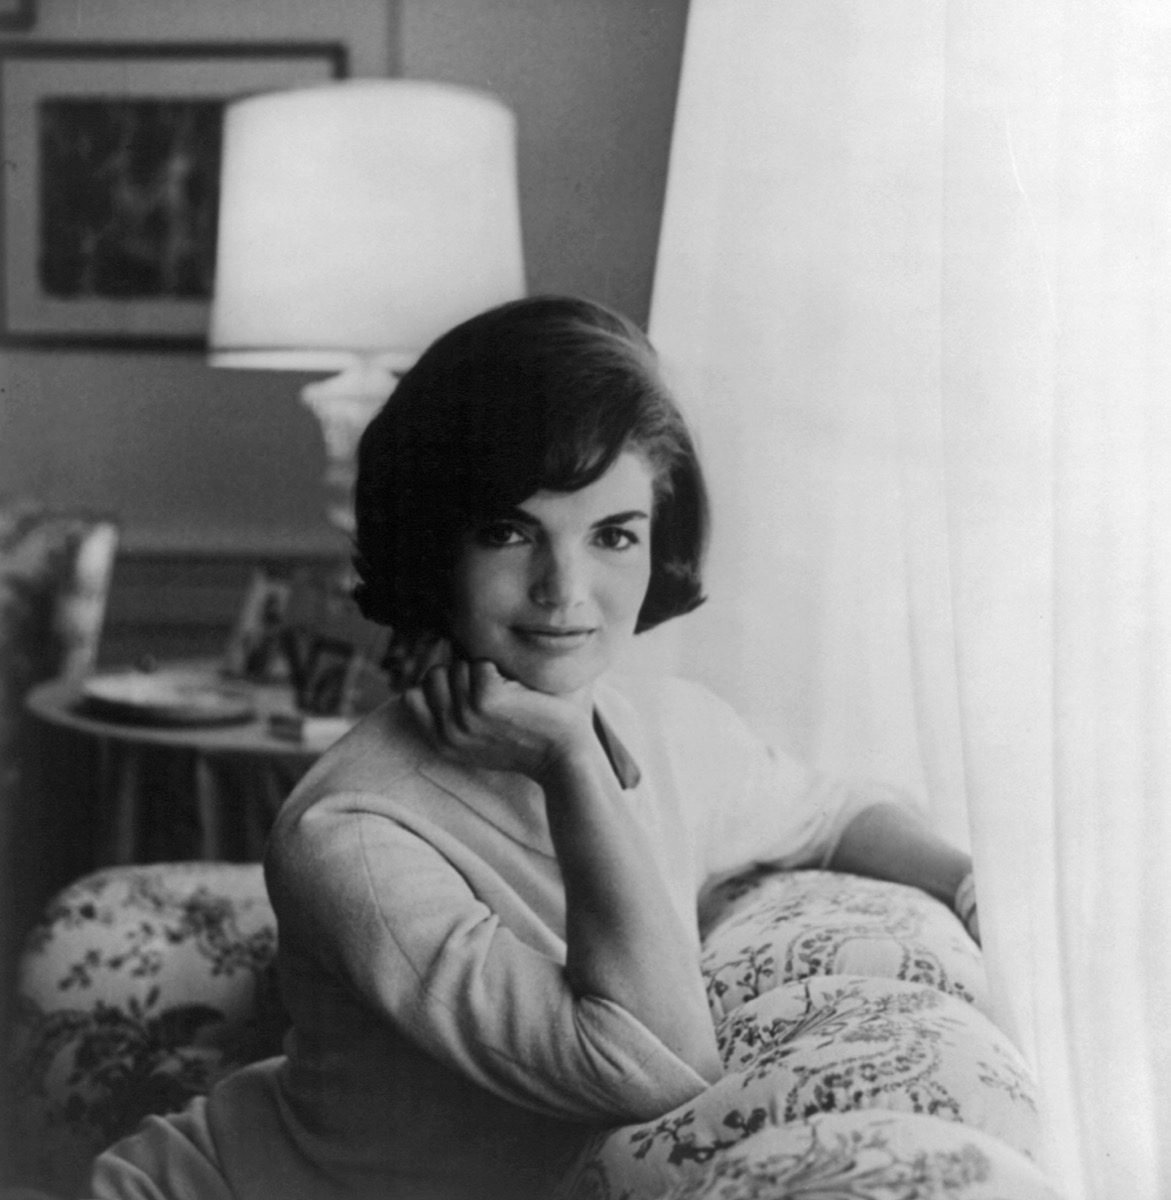 Portrait of Jackie Kennedy, Jacqueline Kennedy Onassis with hand on chin, leaning on couch